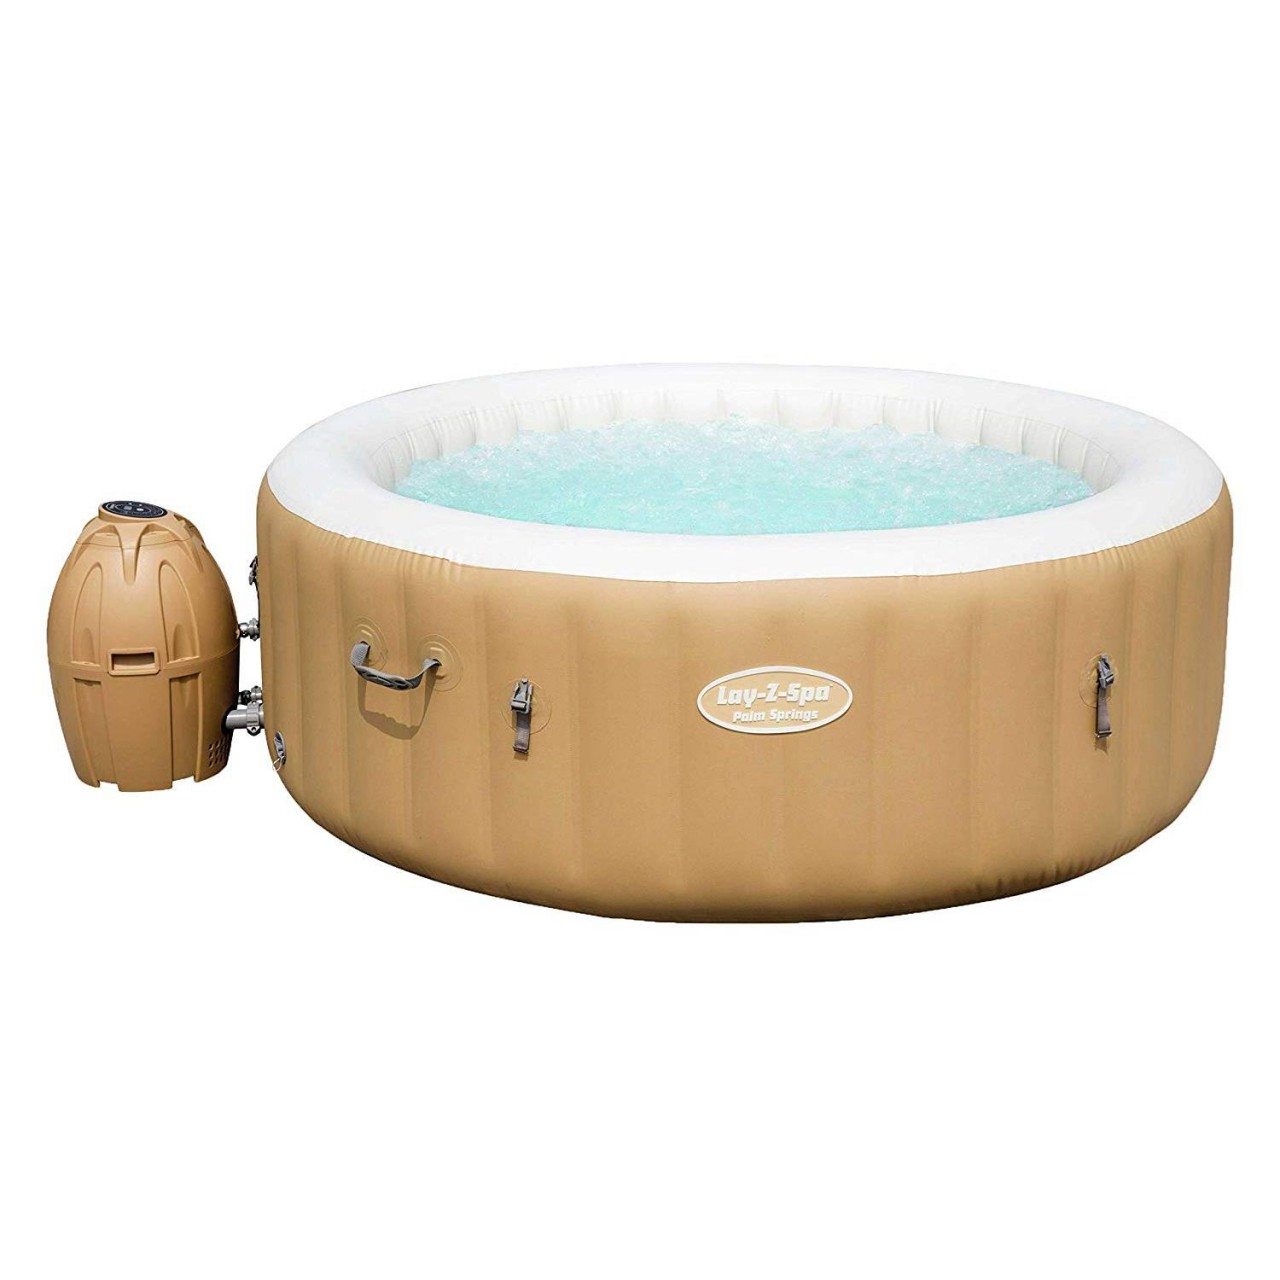 Bestway 54129 Whirlpool Lay Z Spa Palm Springs mit Heizung Massage 196x71 cm